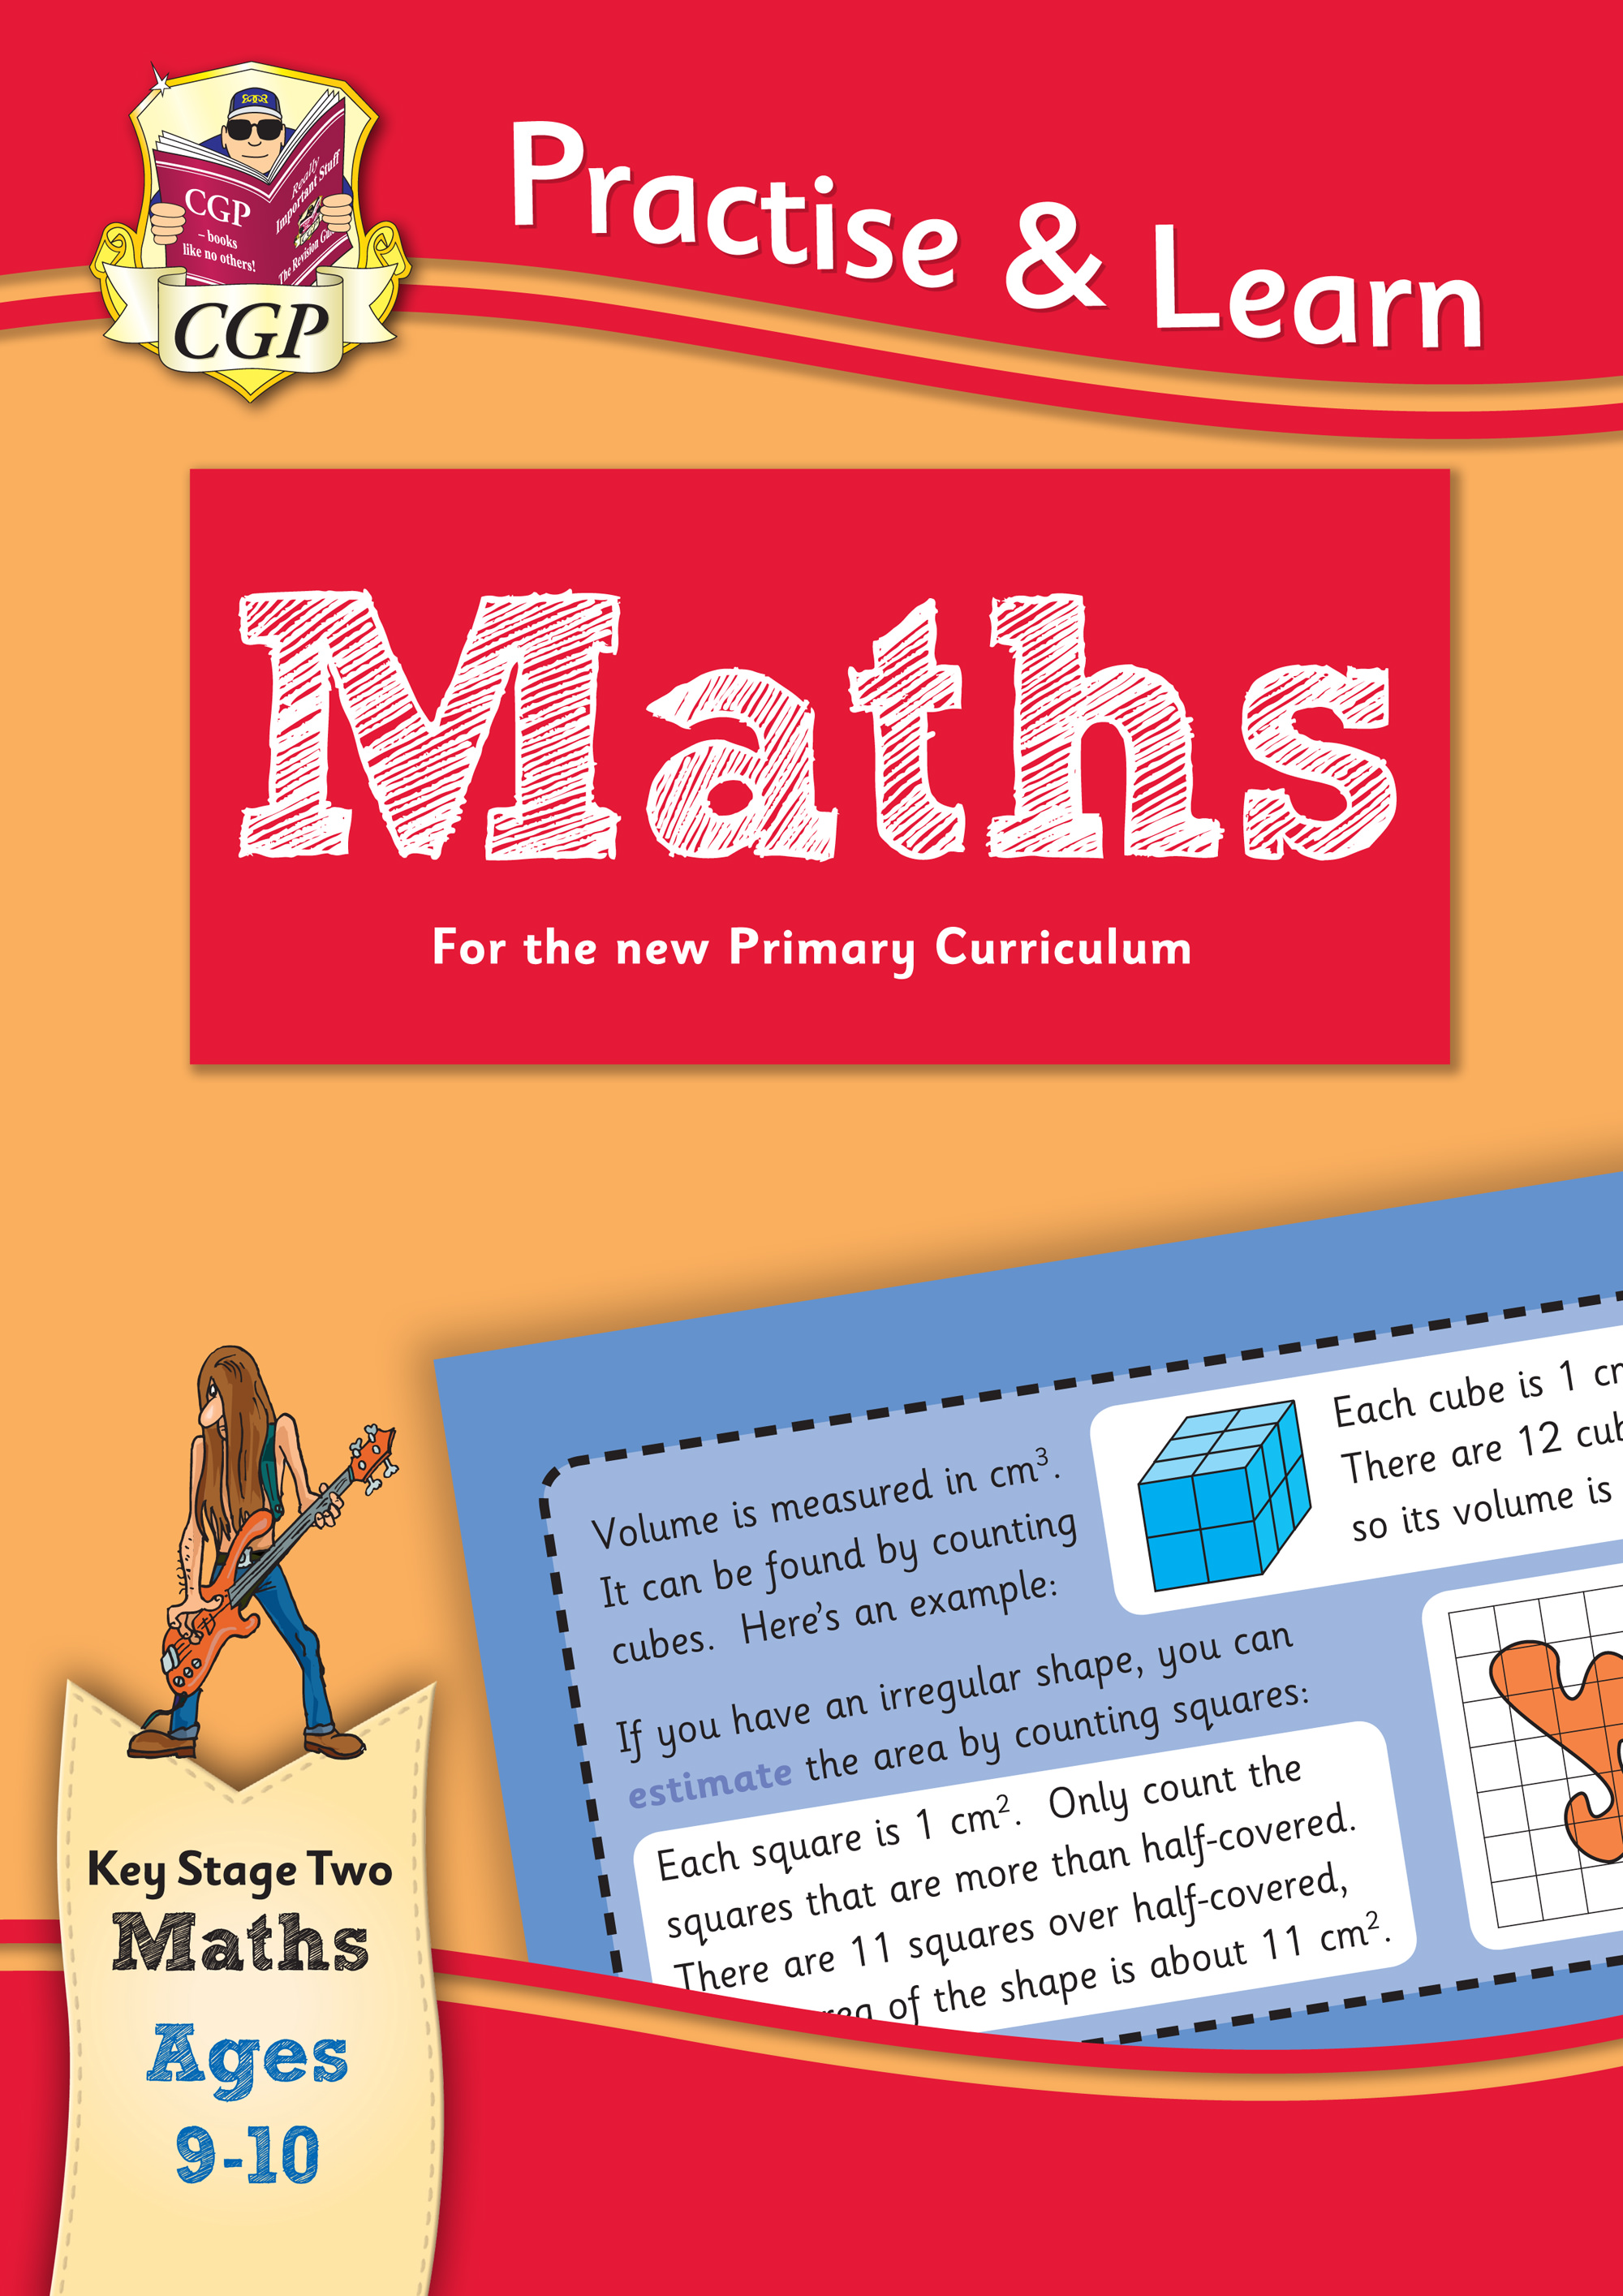 MP5Q22 - New Curriculum Practise & Learn: Maths for Ages 9-10